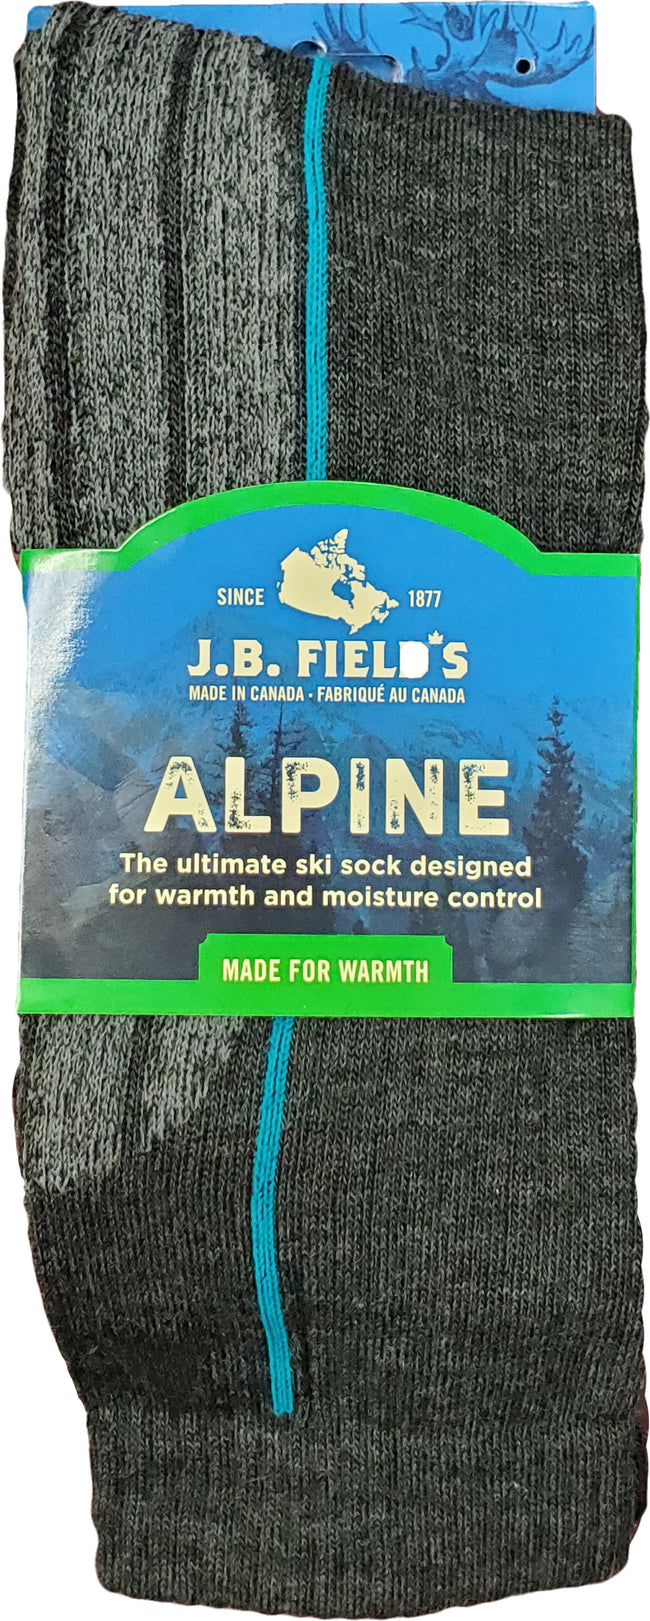 J.B. Field's Light-weight Merino Wool Ski Sock